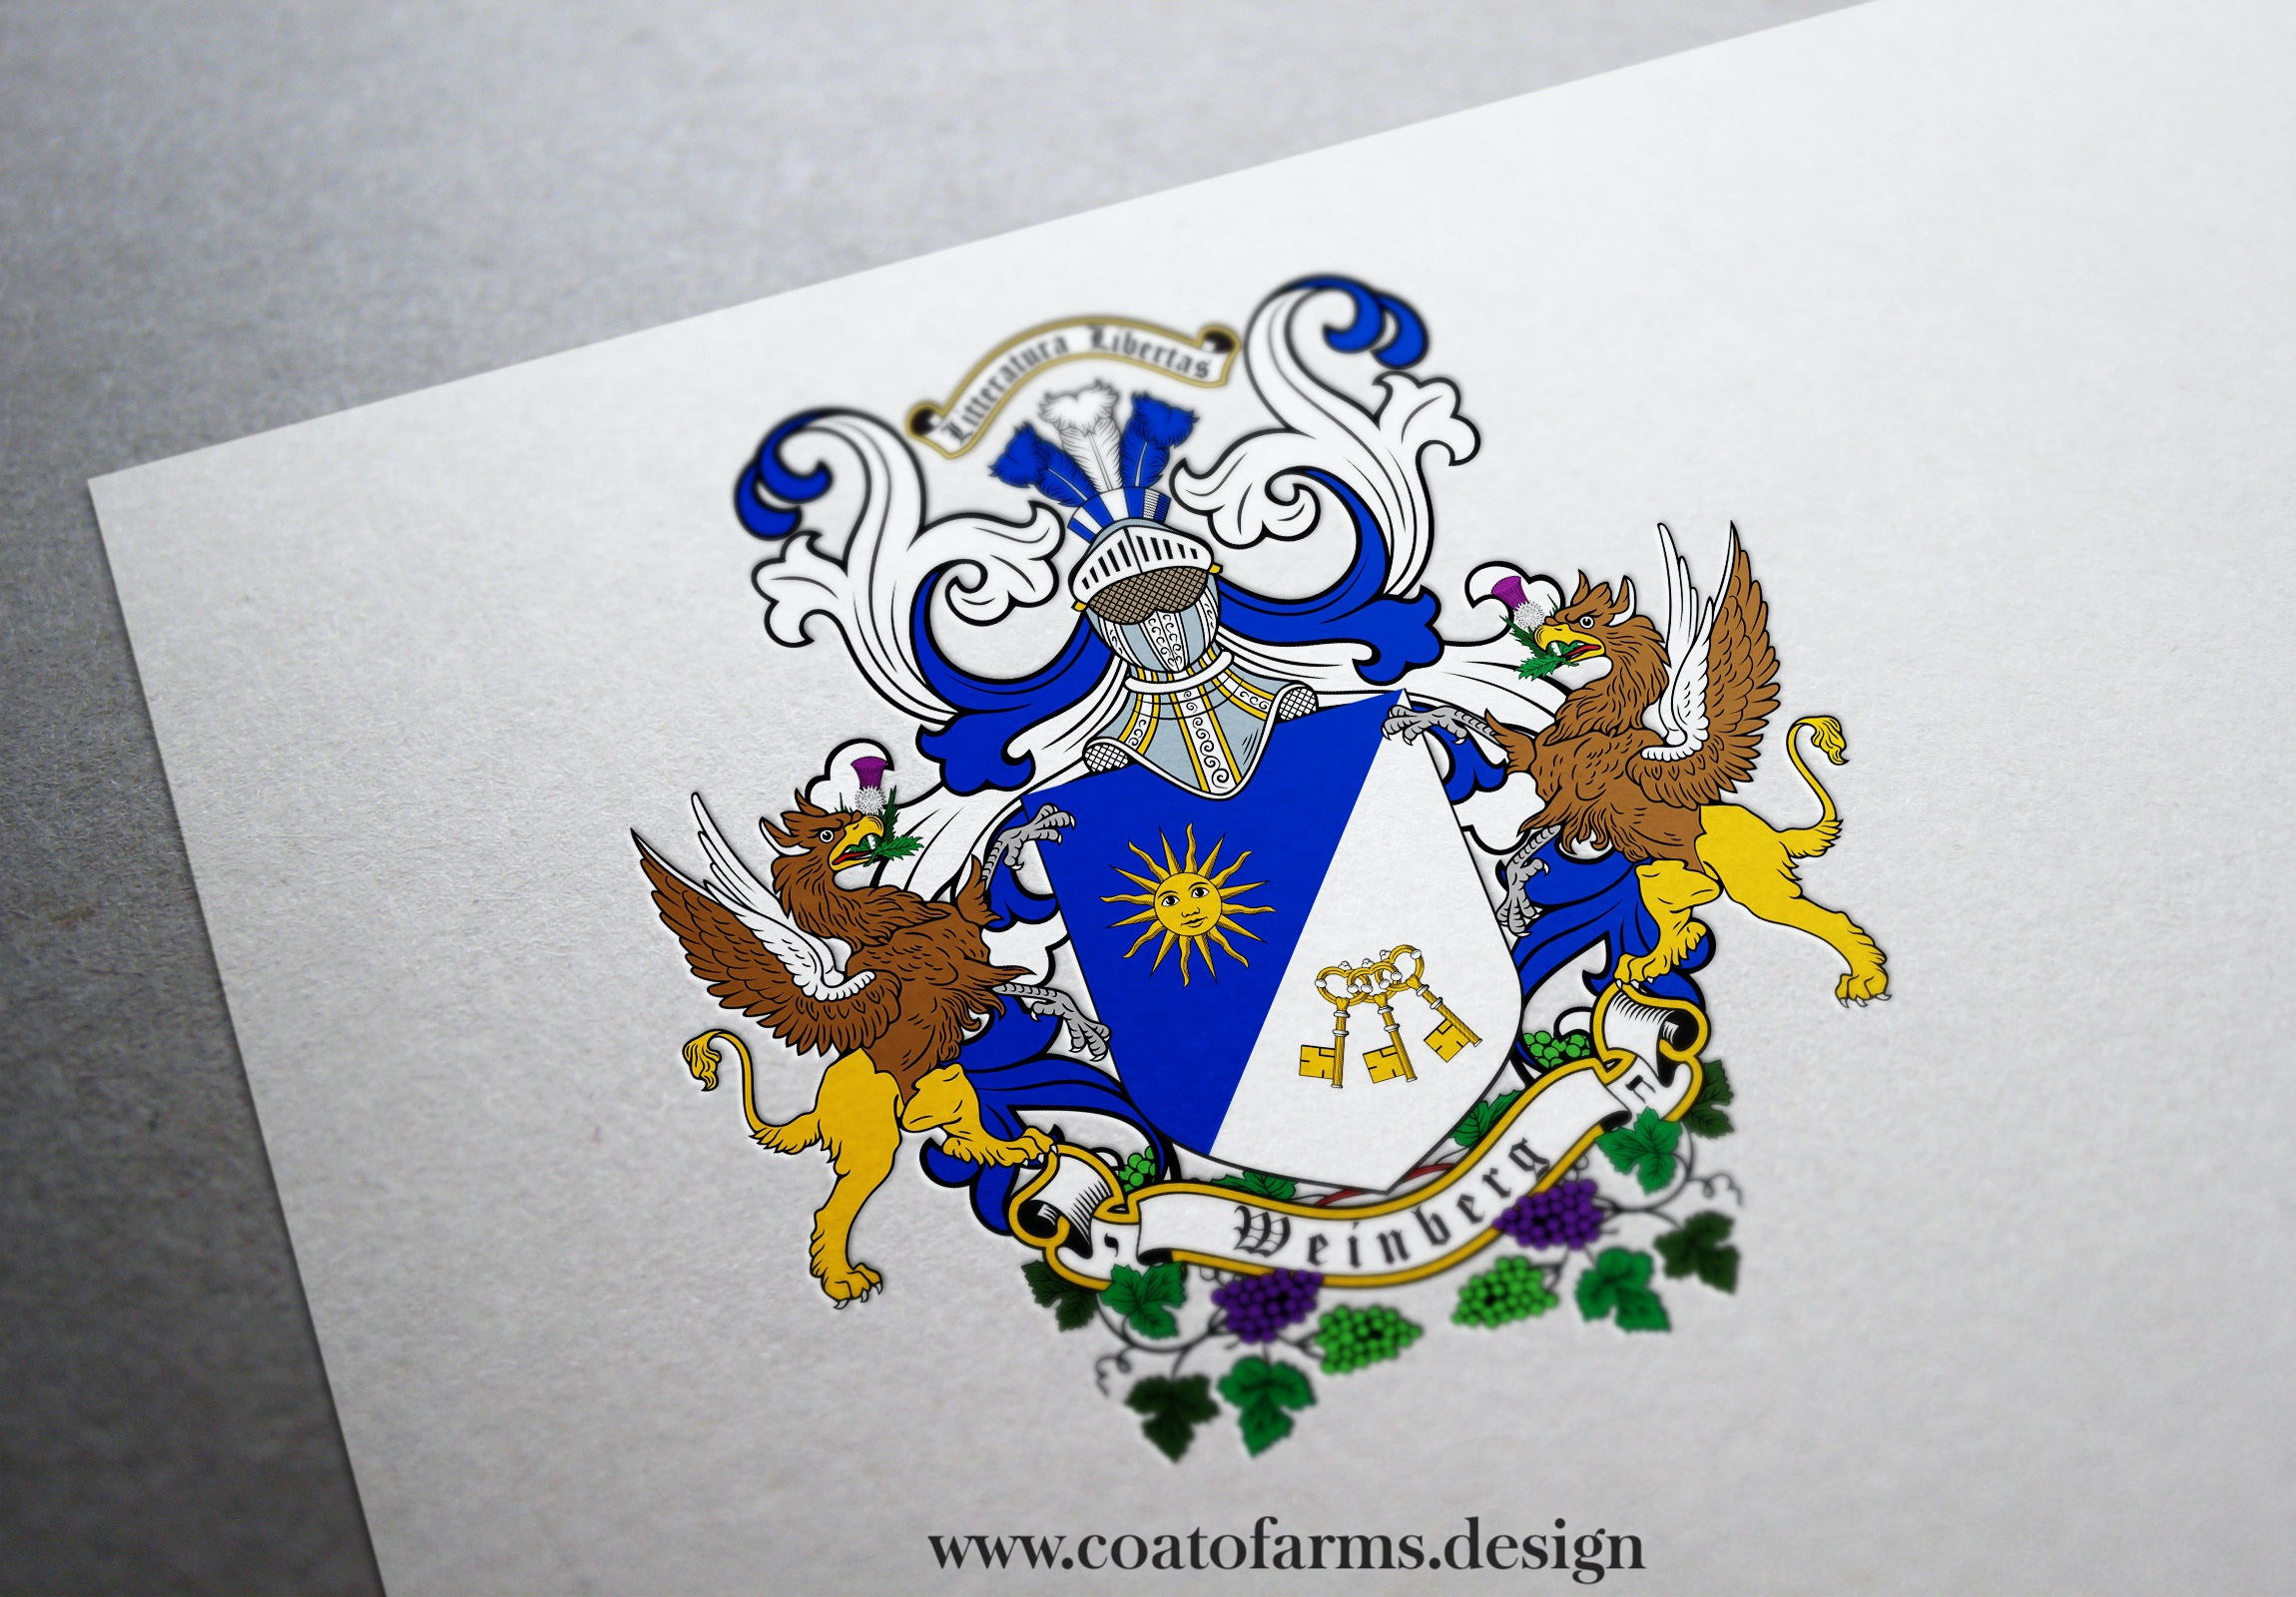 Coat of arms I designed for a Weinberg family from the USA